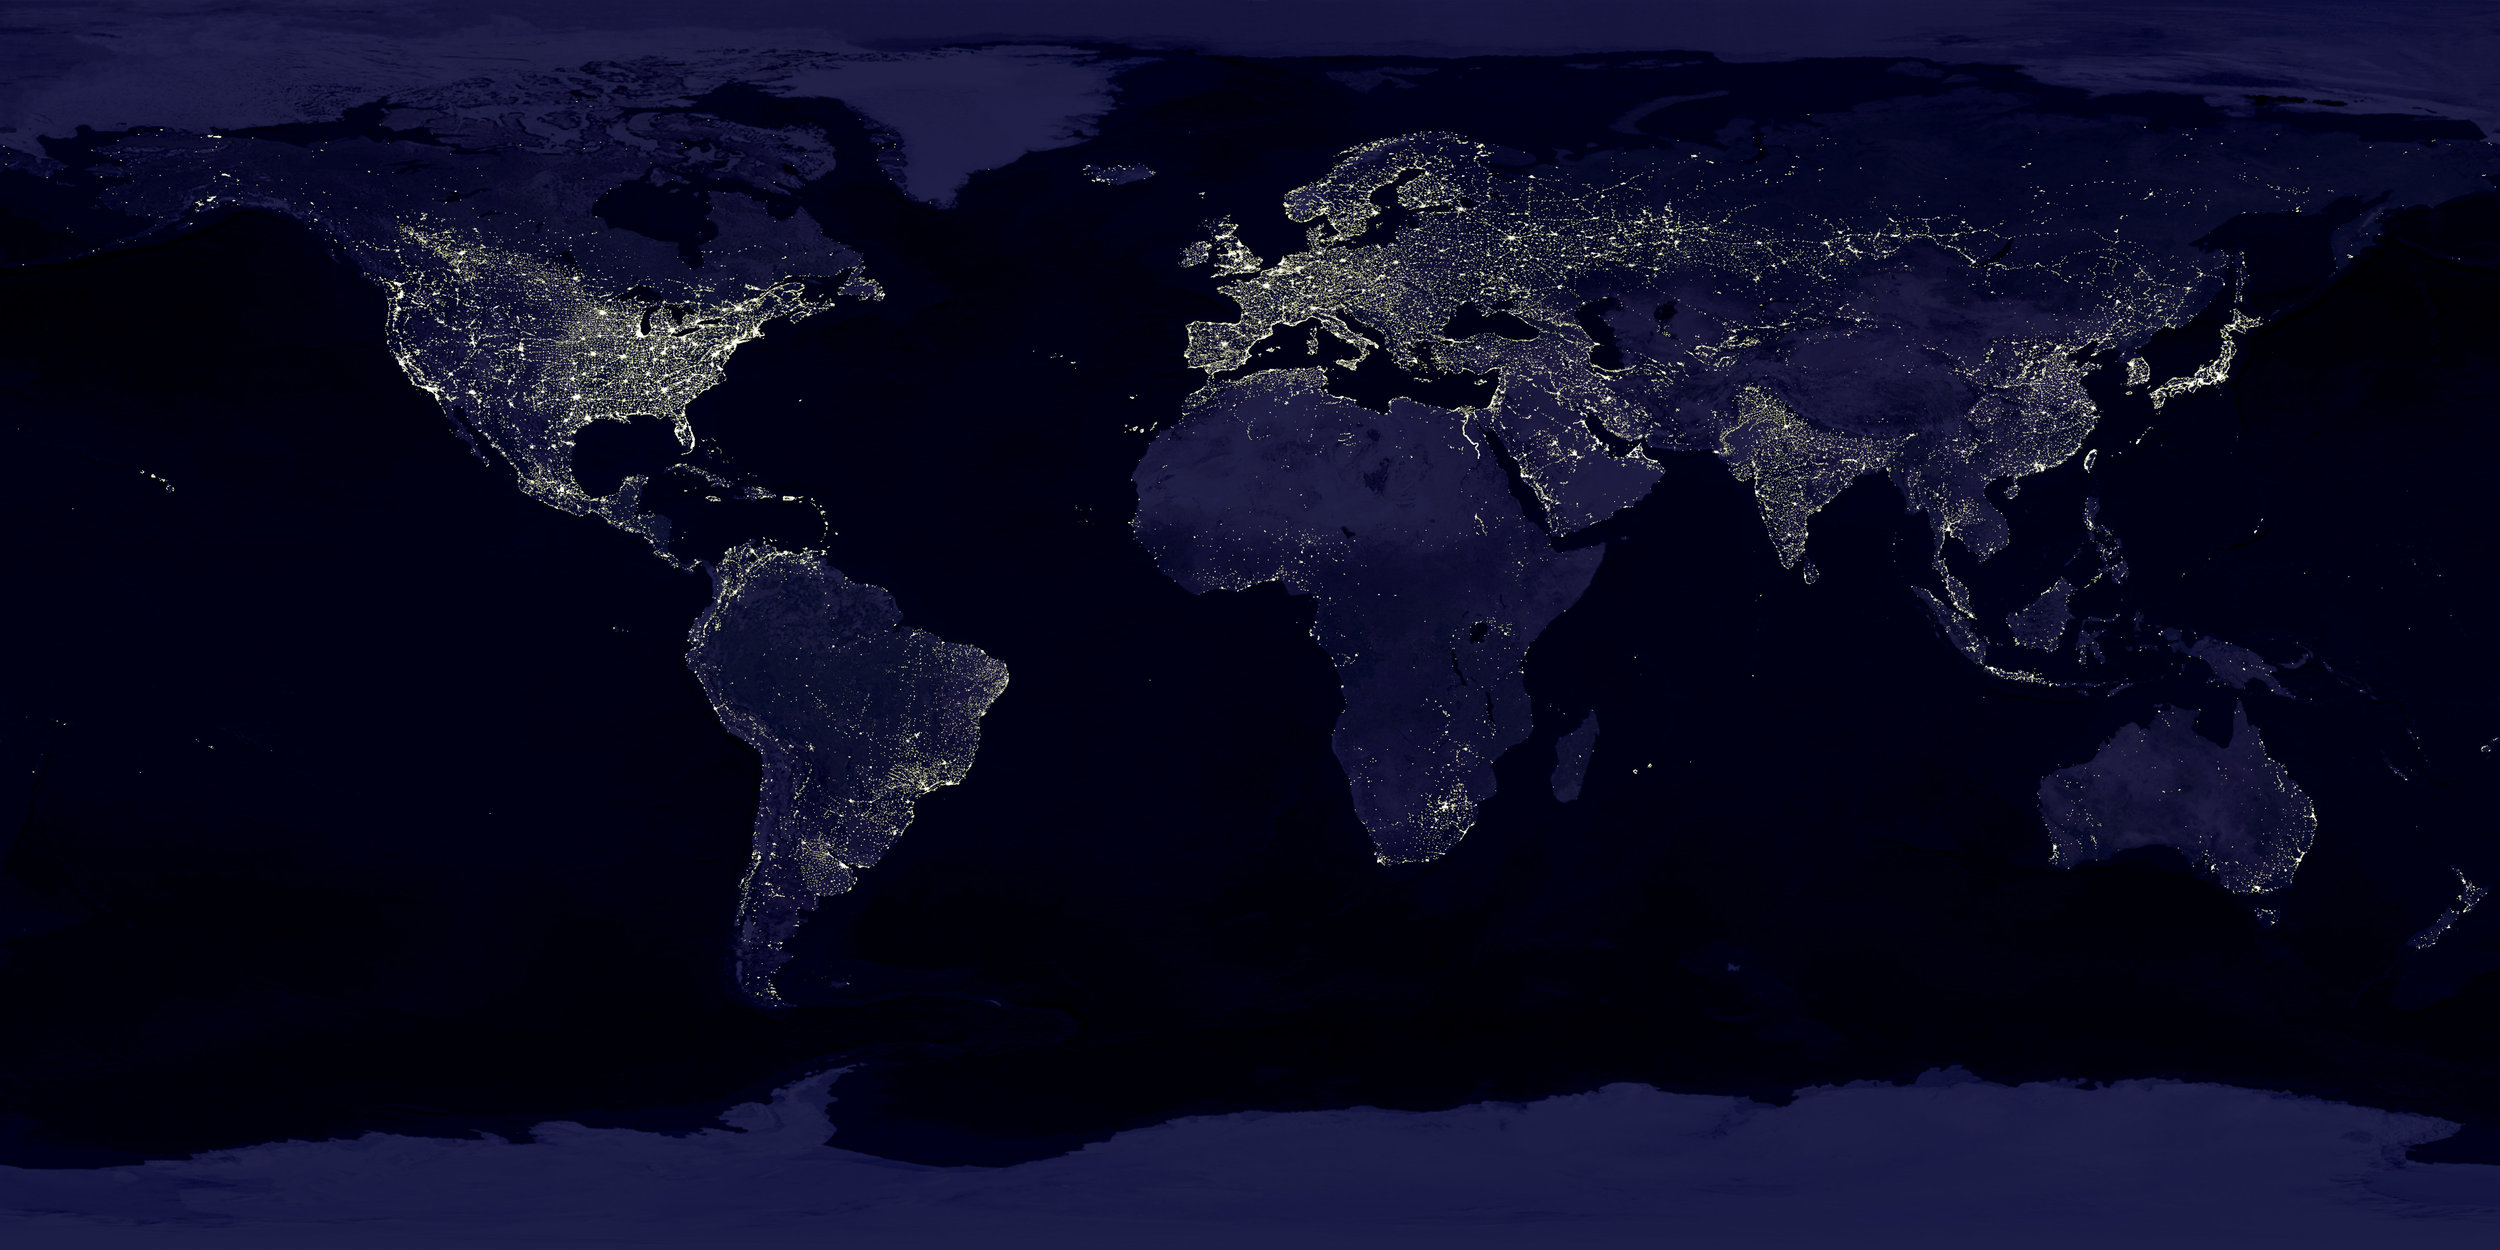 Lights-on-Earth-from-Space.jpg